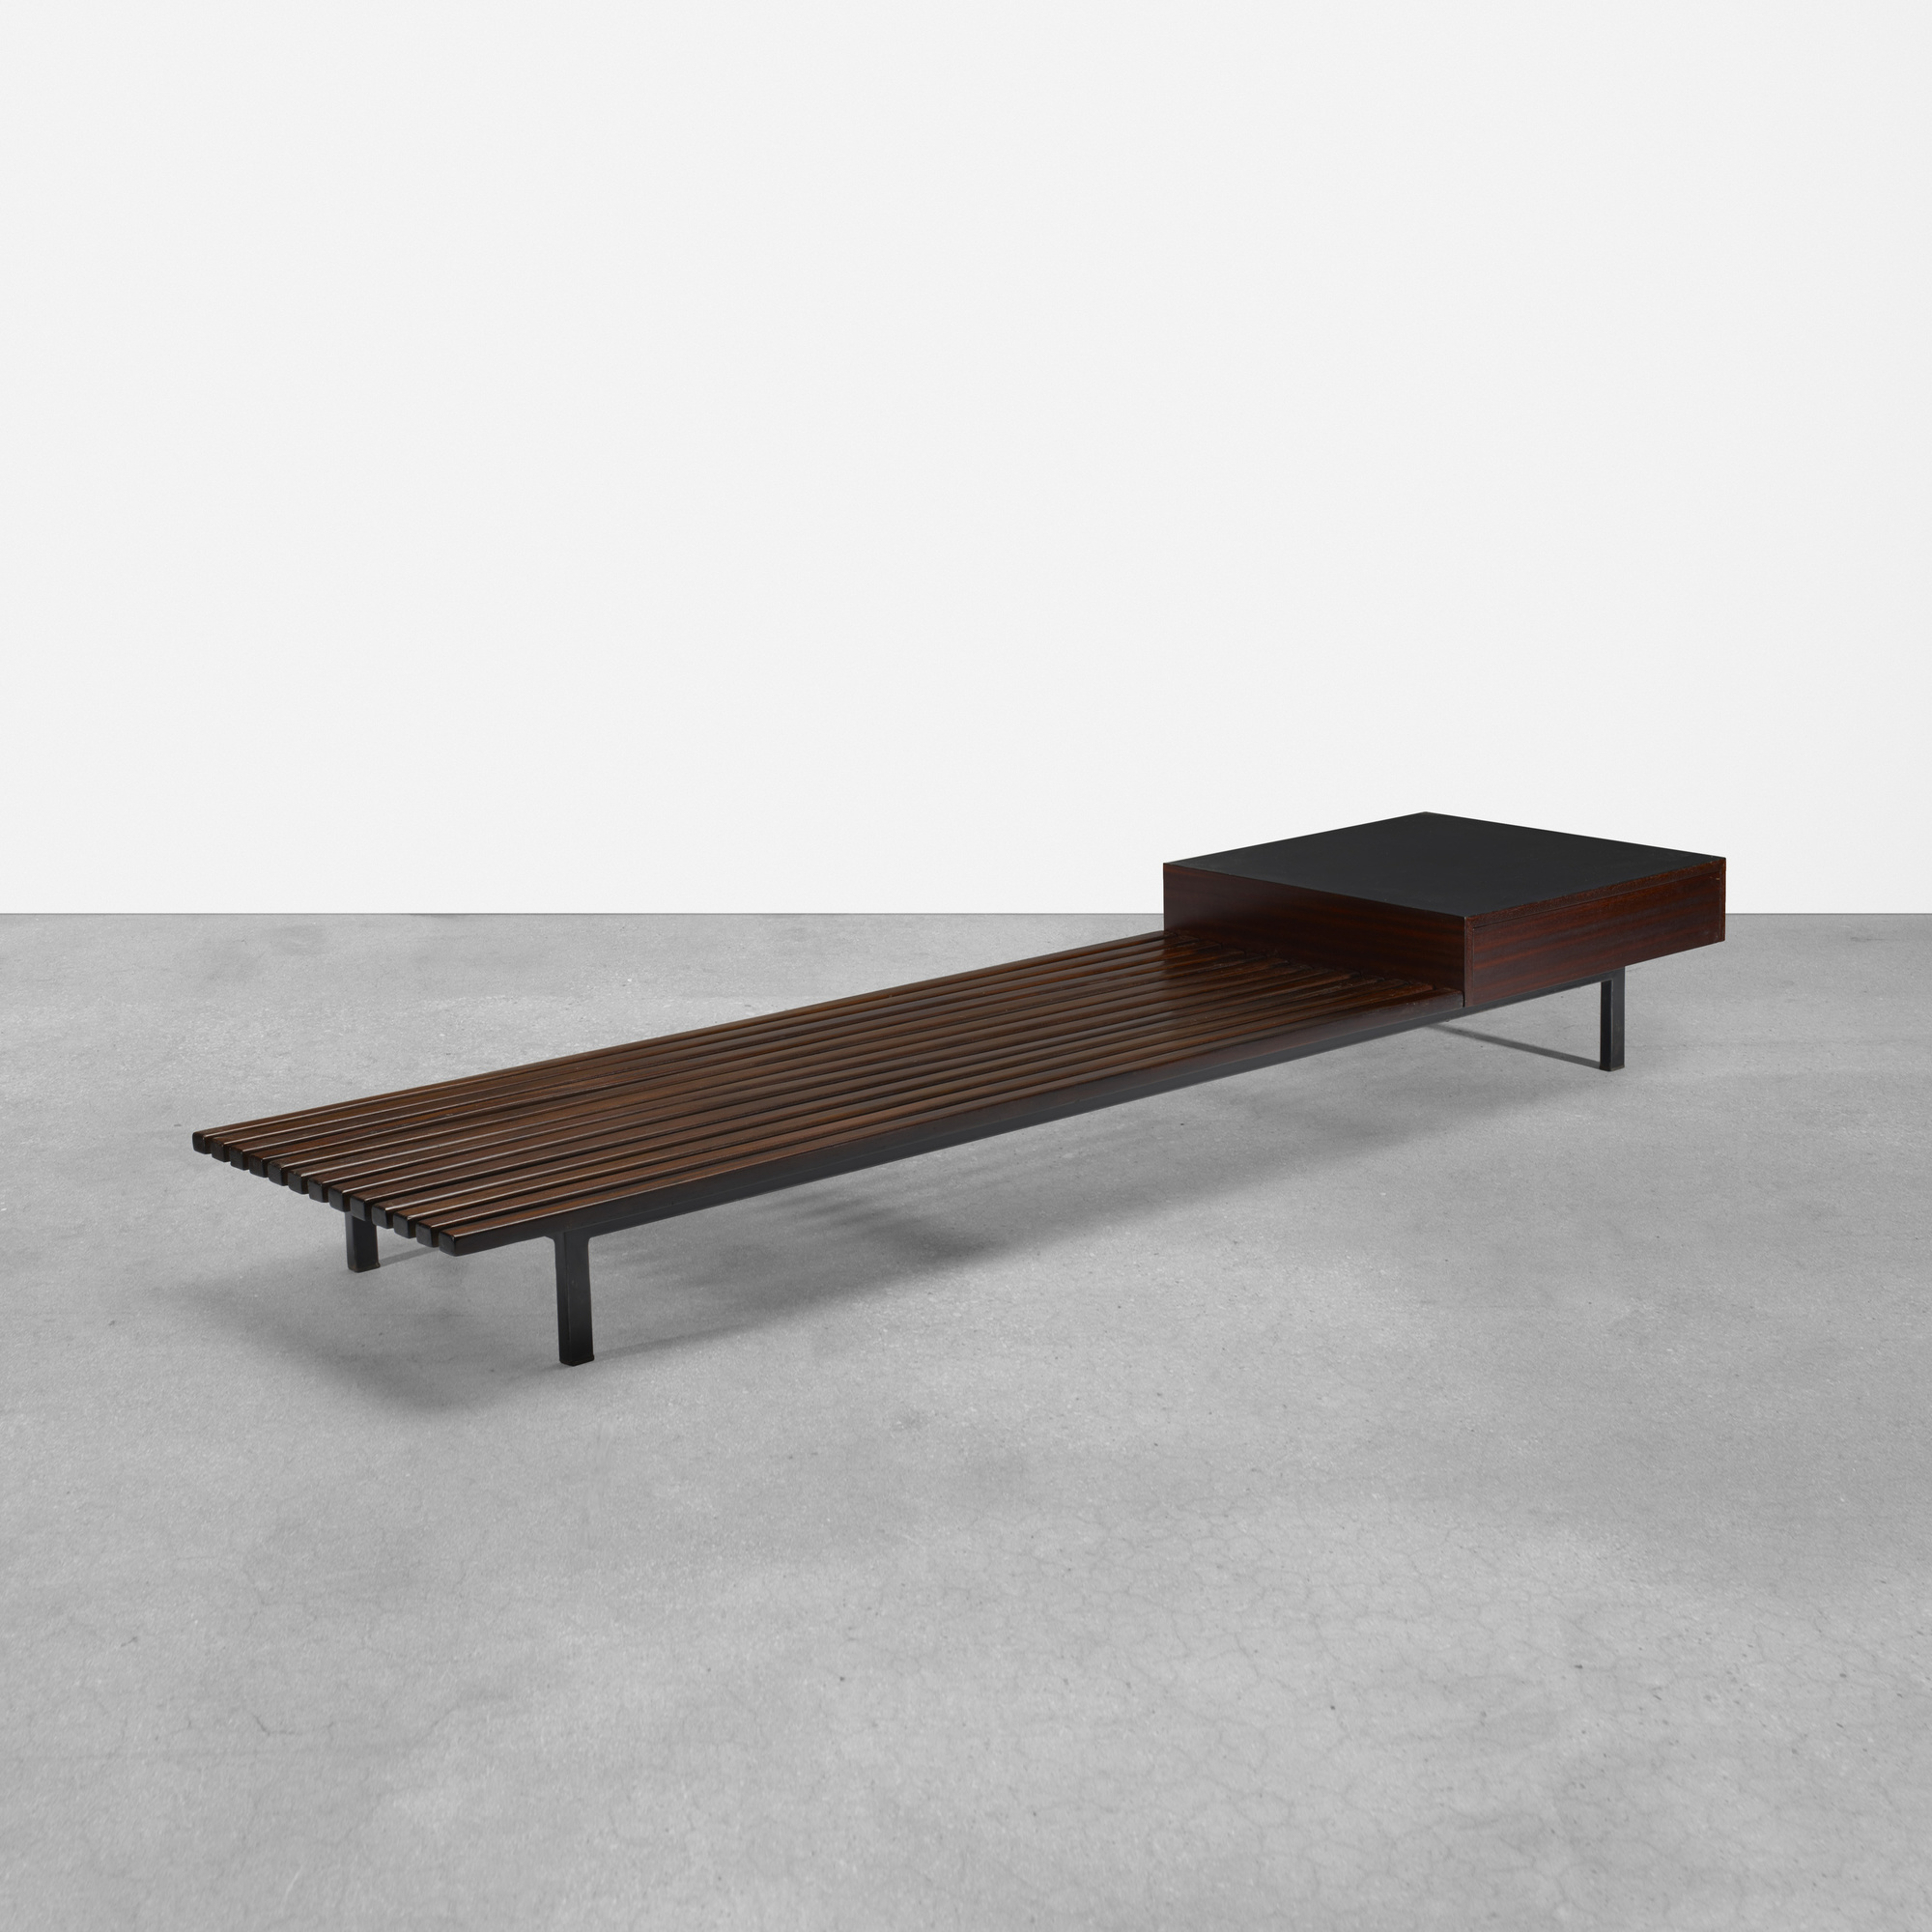 182: Charlotte Perriand / bench from Cité Cansado, Mauritania (1 of 2)